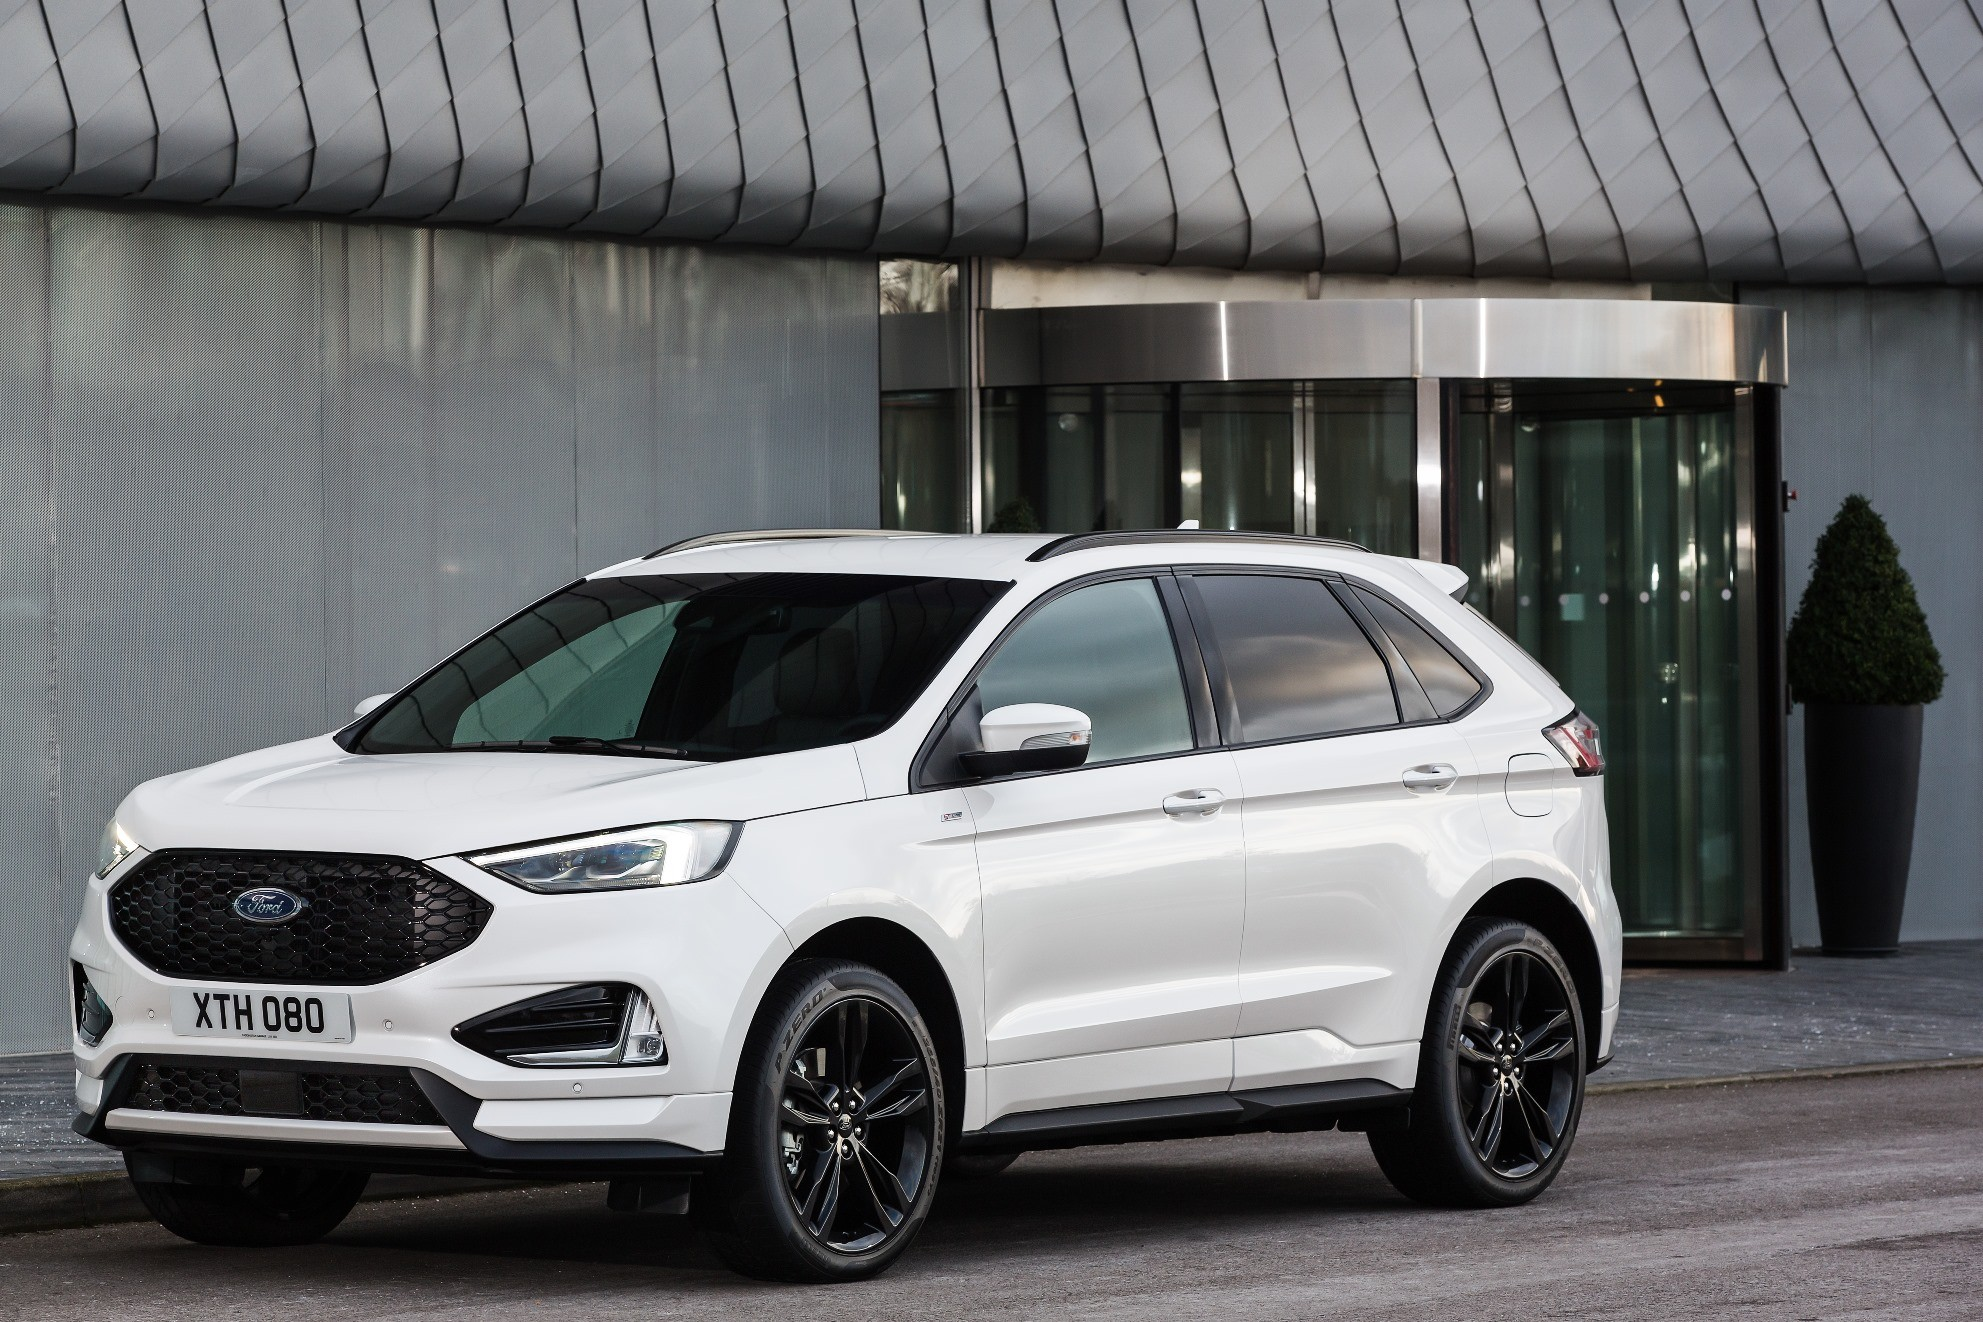 2019 Ford Edge Launched In Europe With EcoBlue Bi-Turbo ...